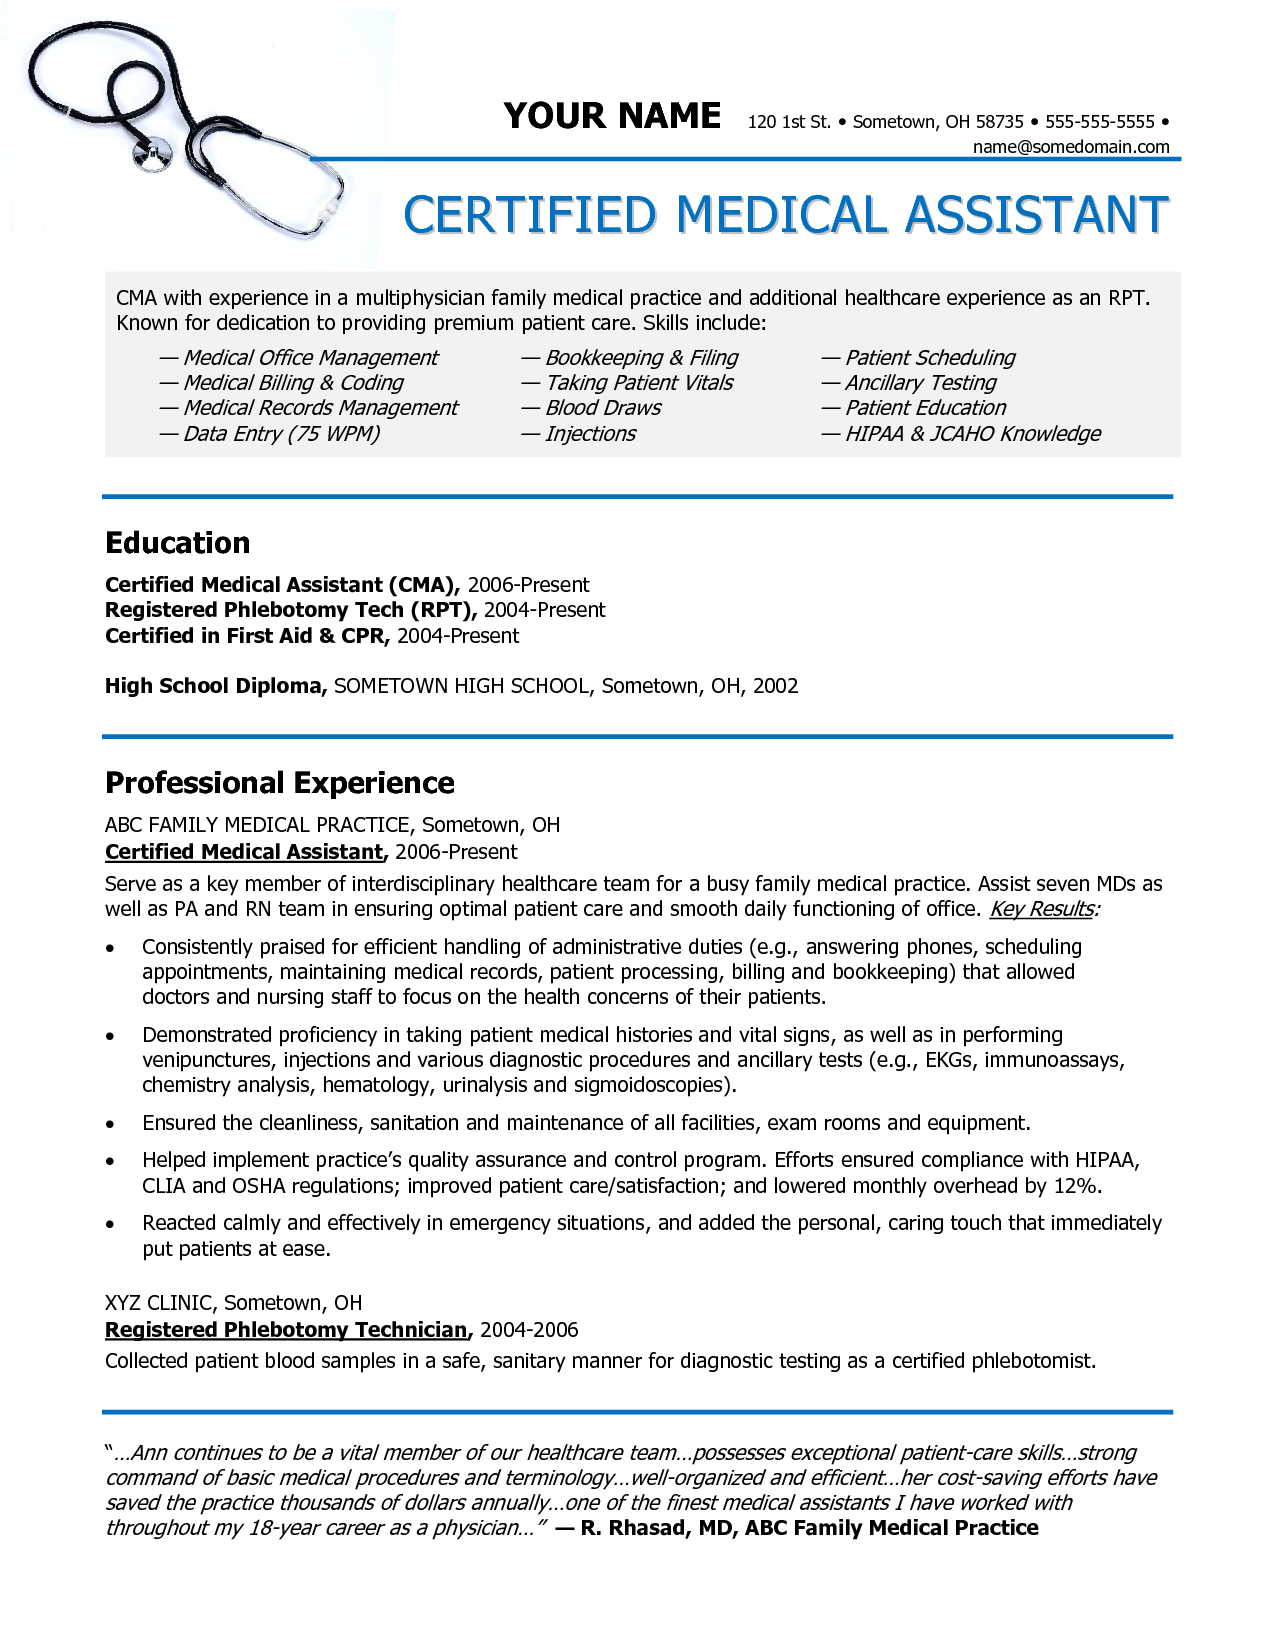 medical assistant resume samples medical assistant job description